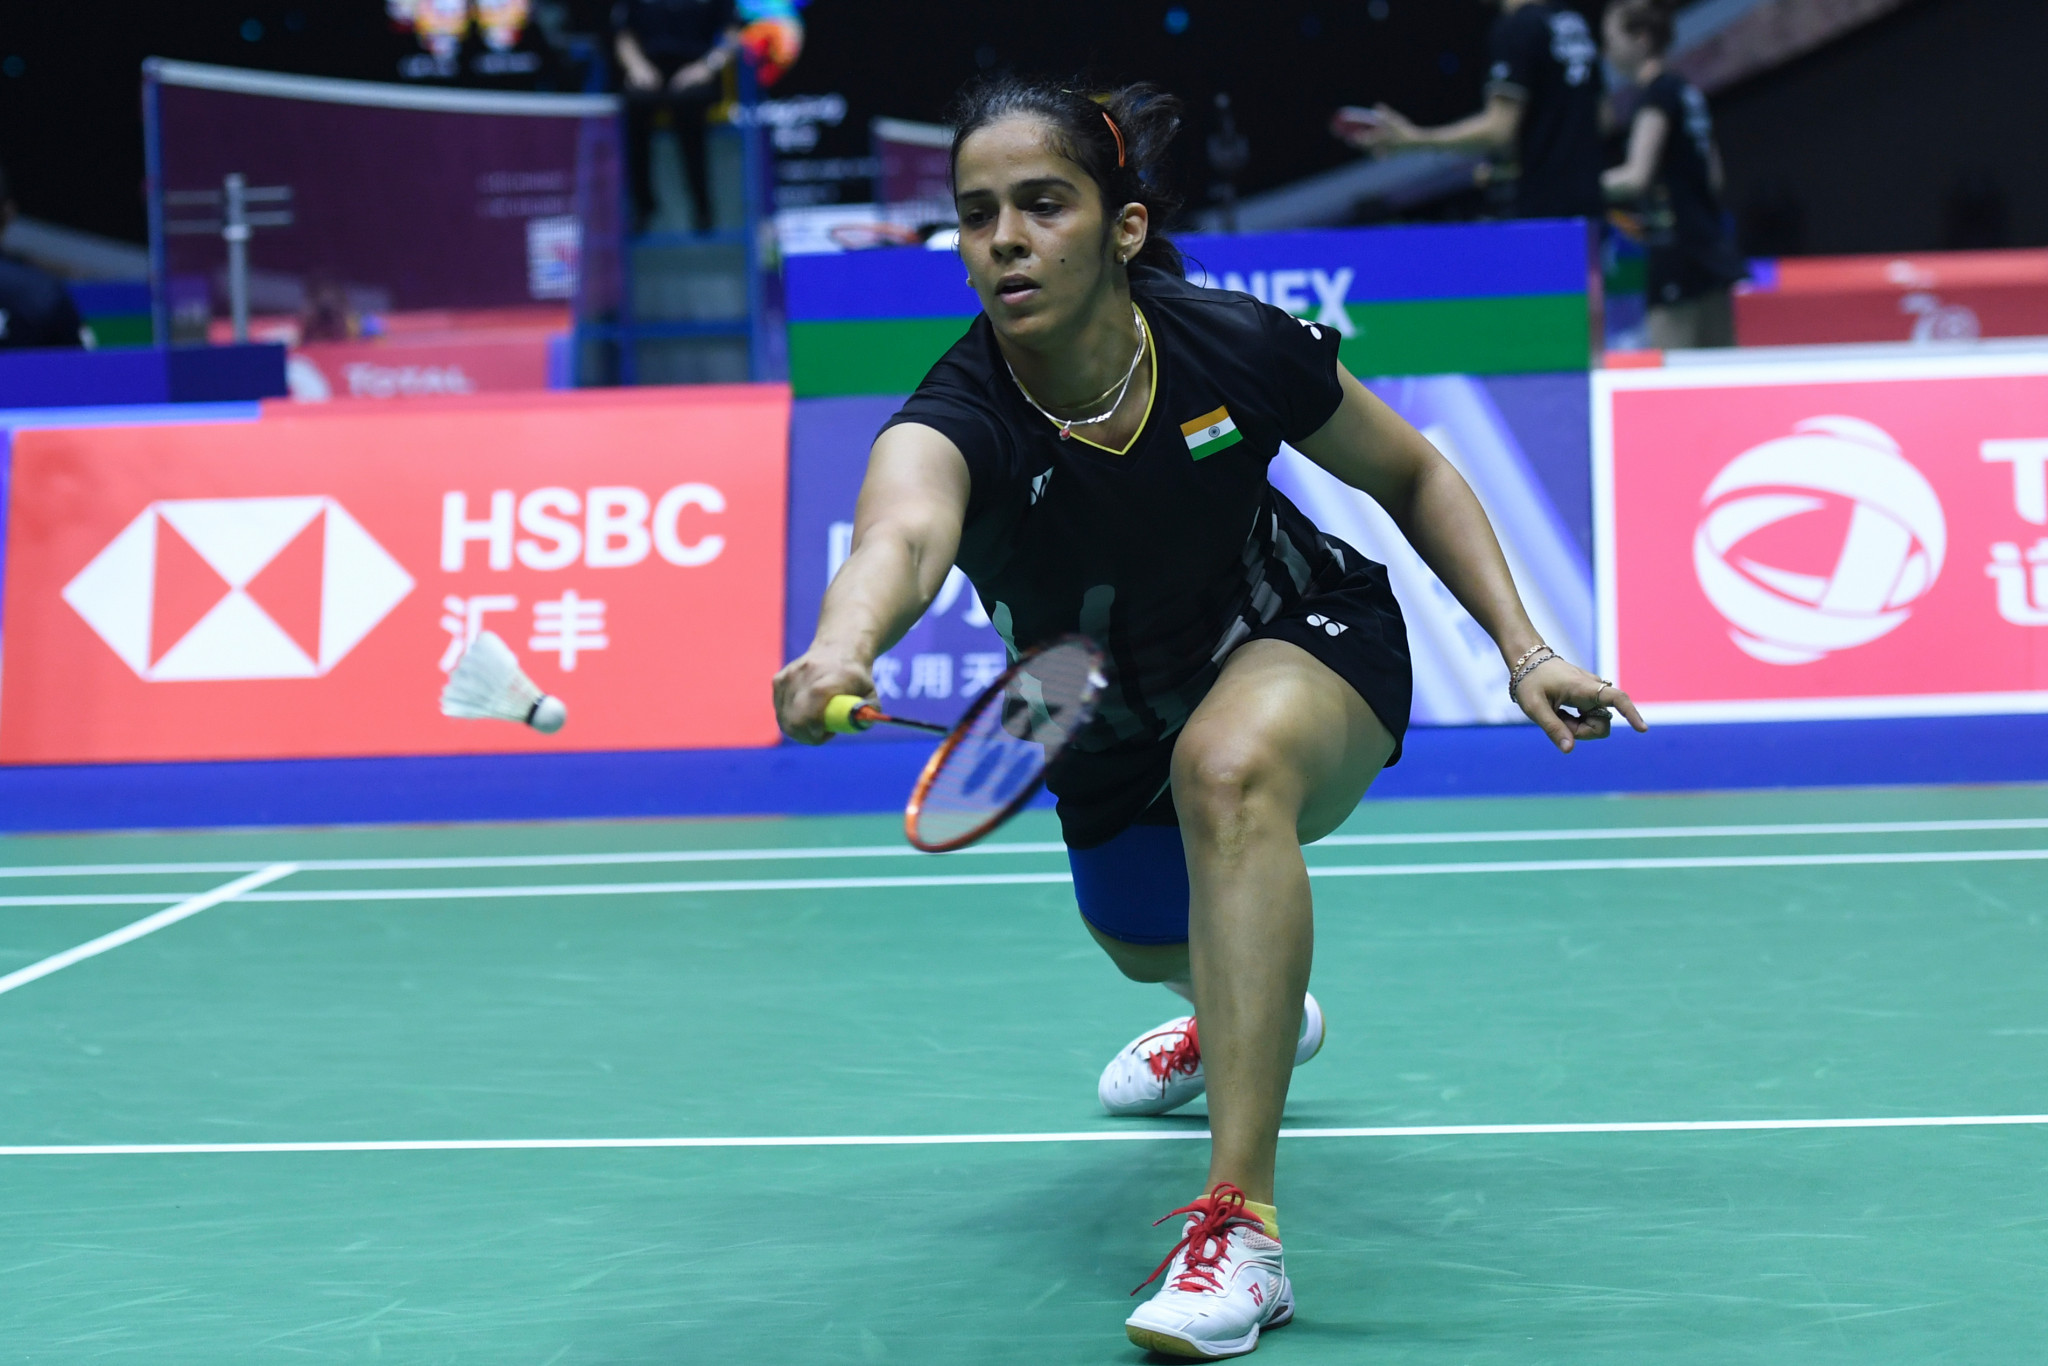 India's Saina Nehwal is out of the BWF Denmark Open in Odense ©Getty Images